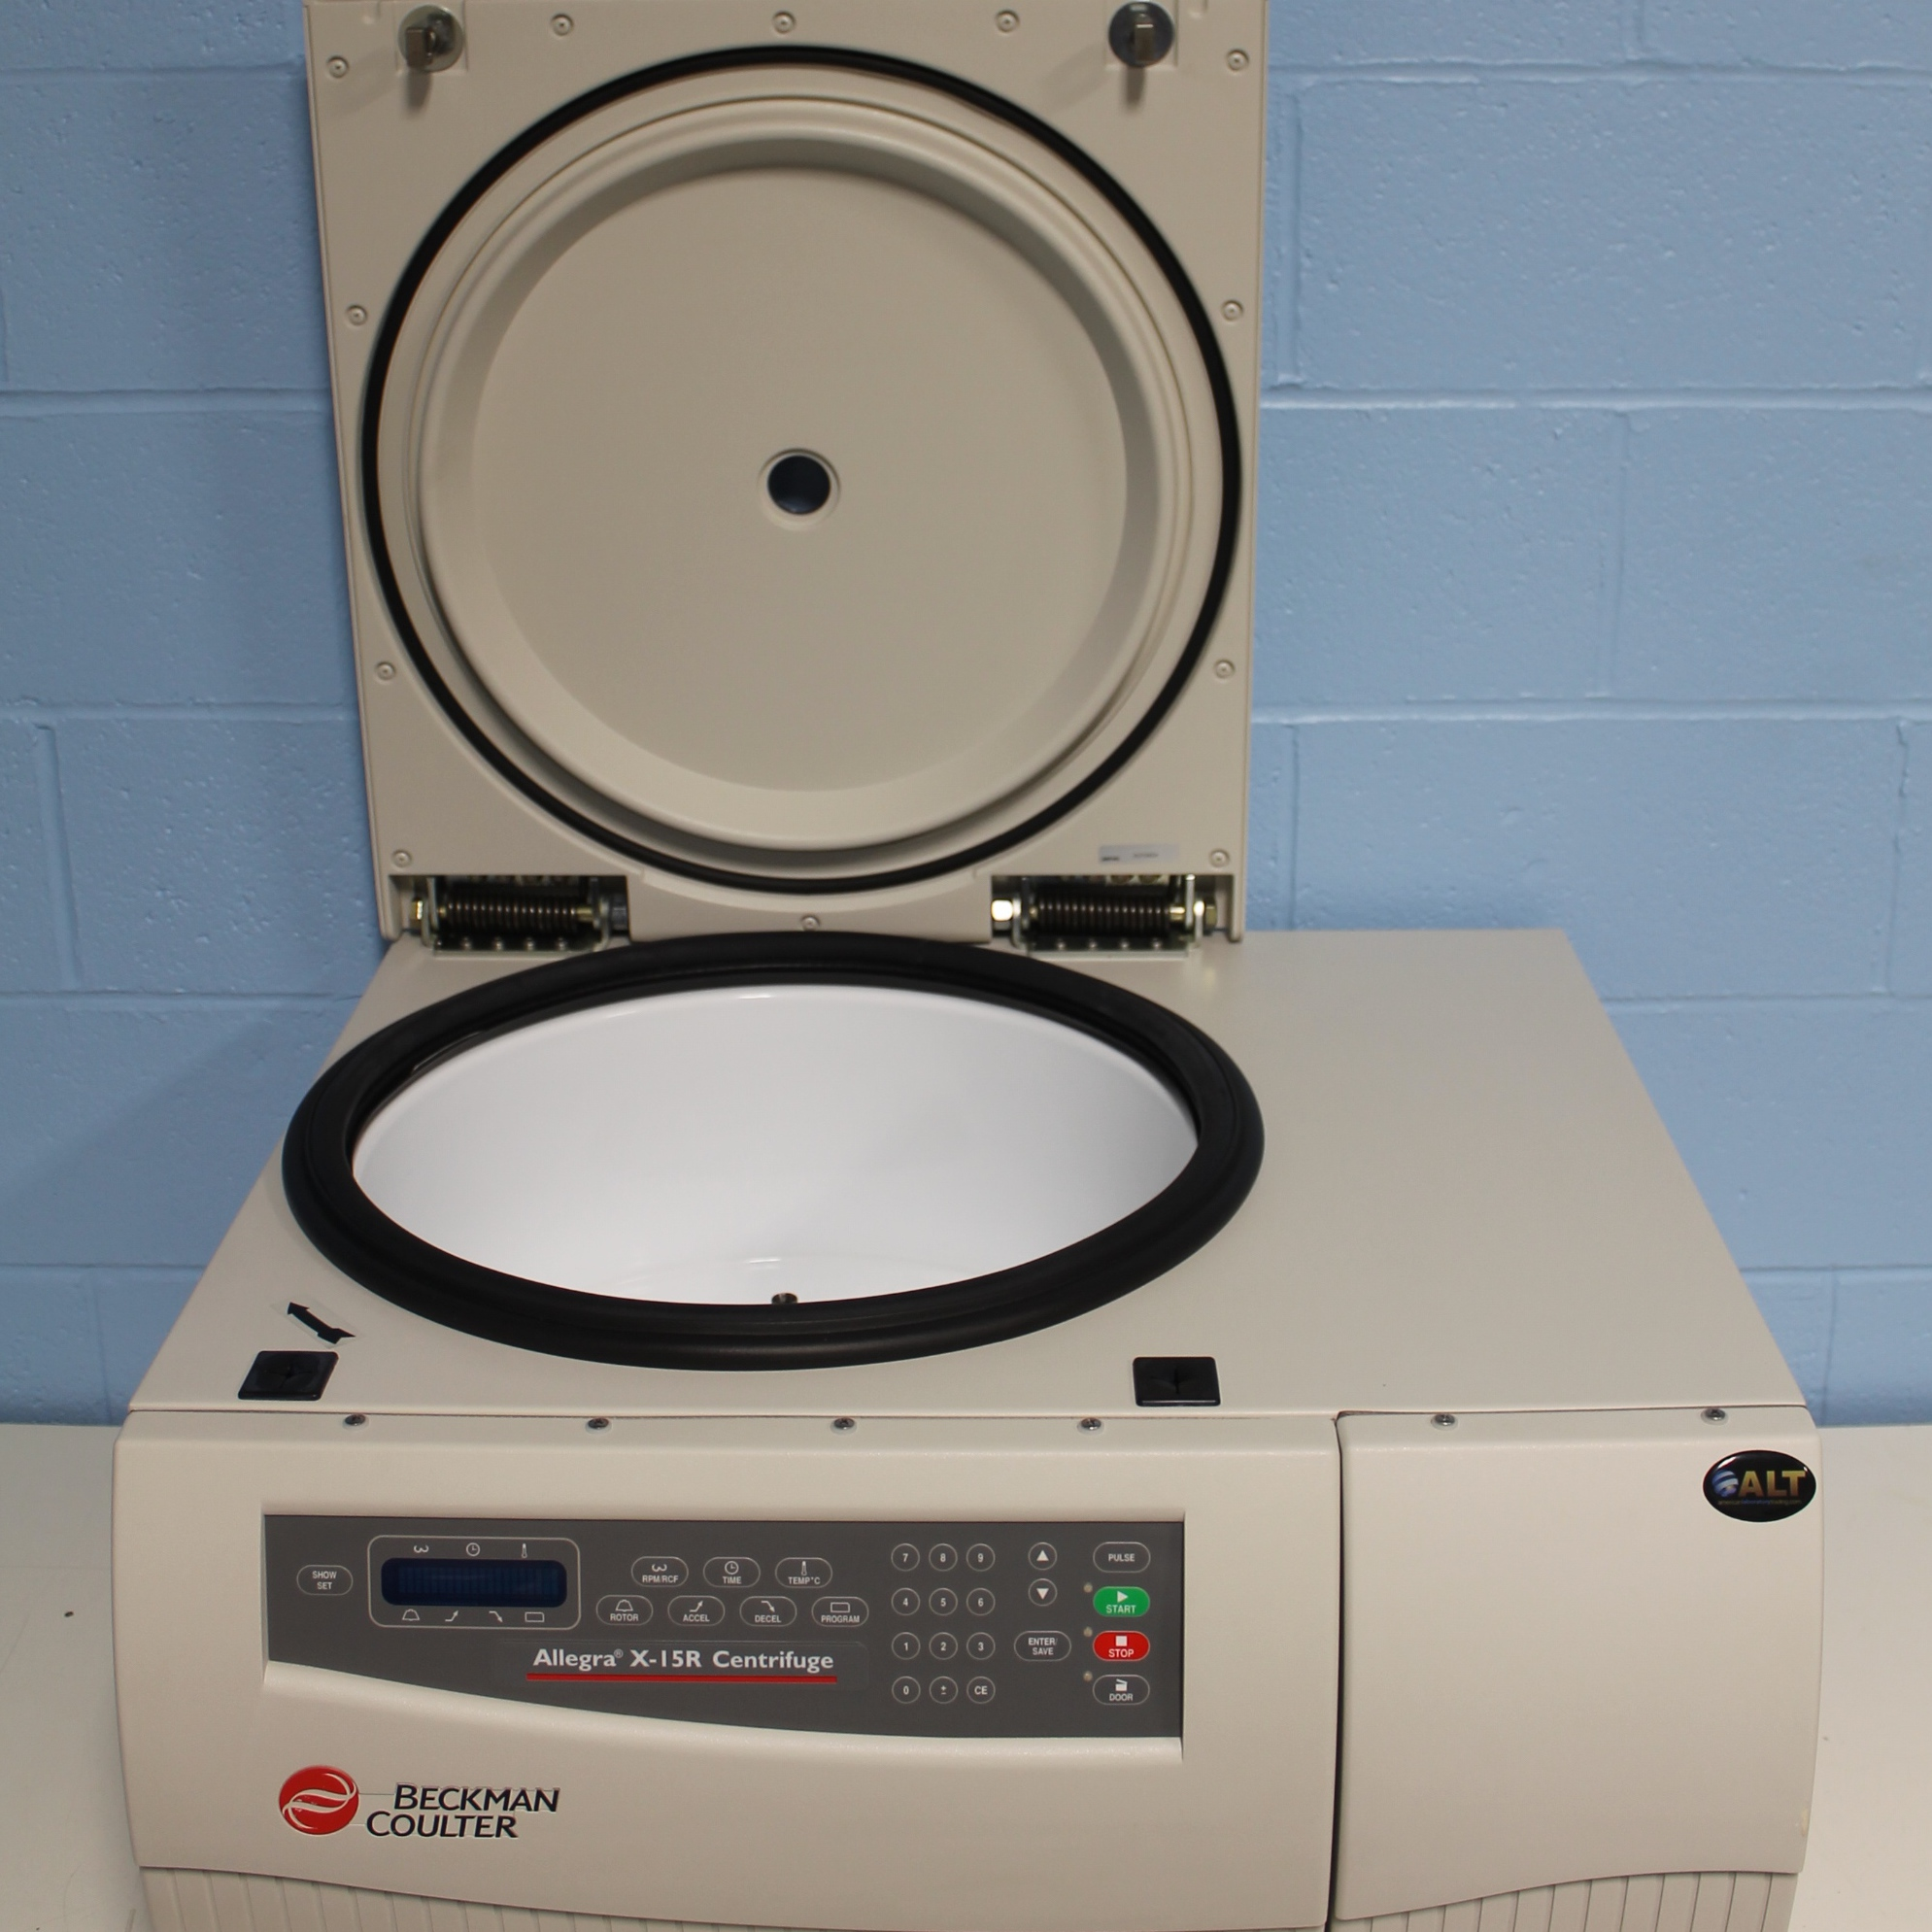 Beckman Coulter Allegra X-15R Refrigerated Benchtop Centrifuge Image